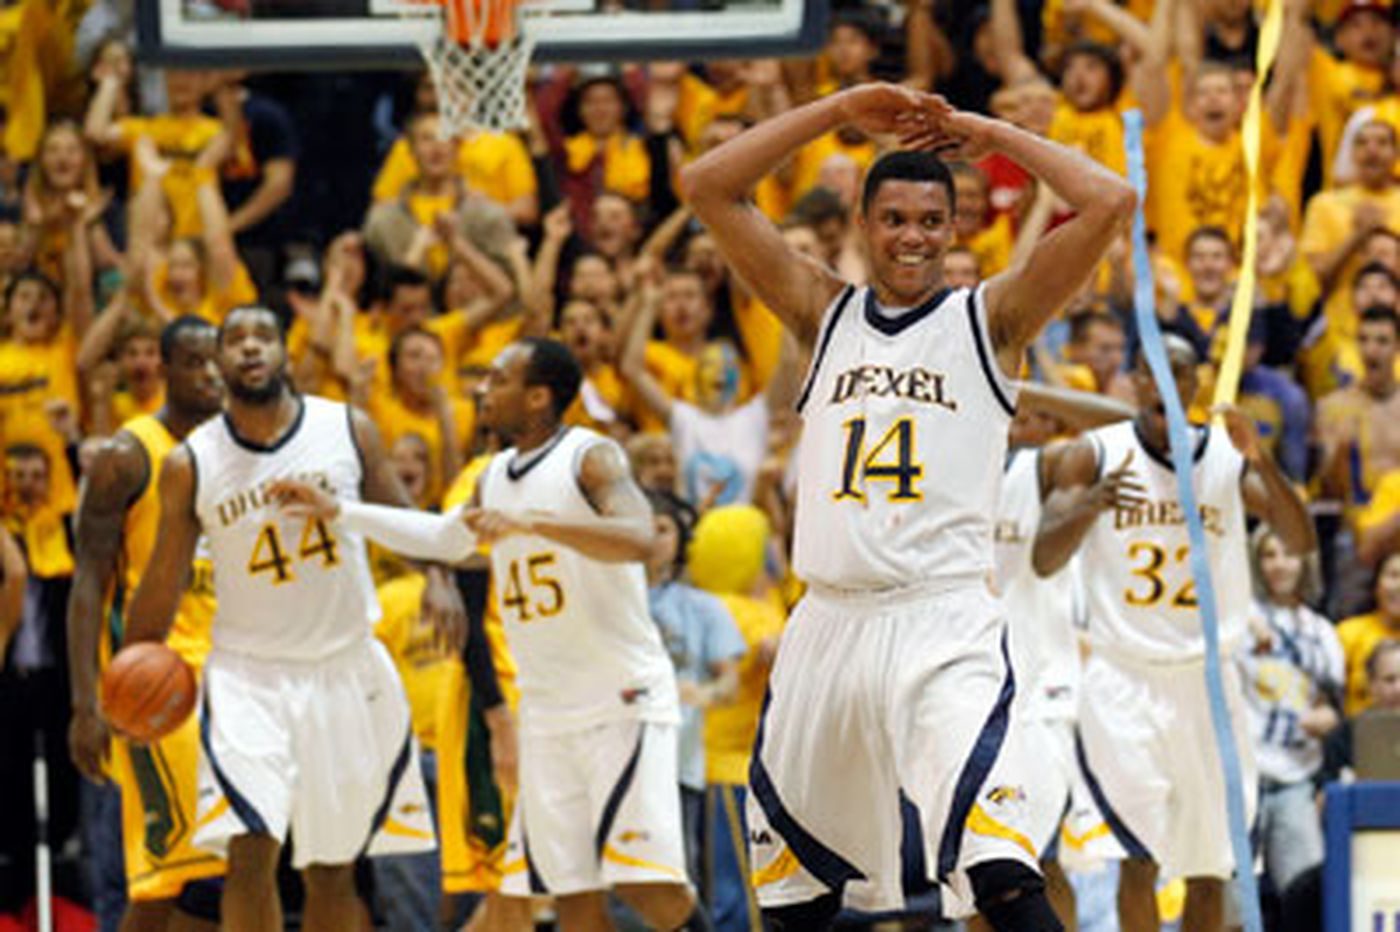 Drexel aims for first CAA tournament title